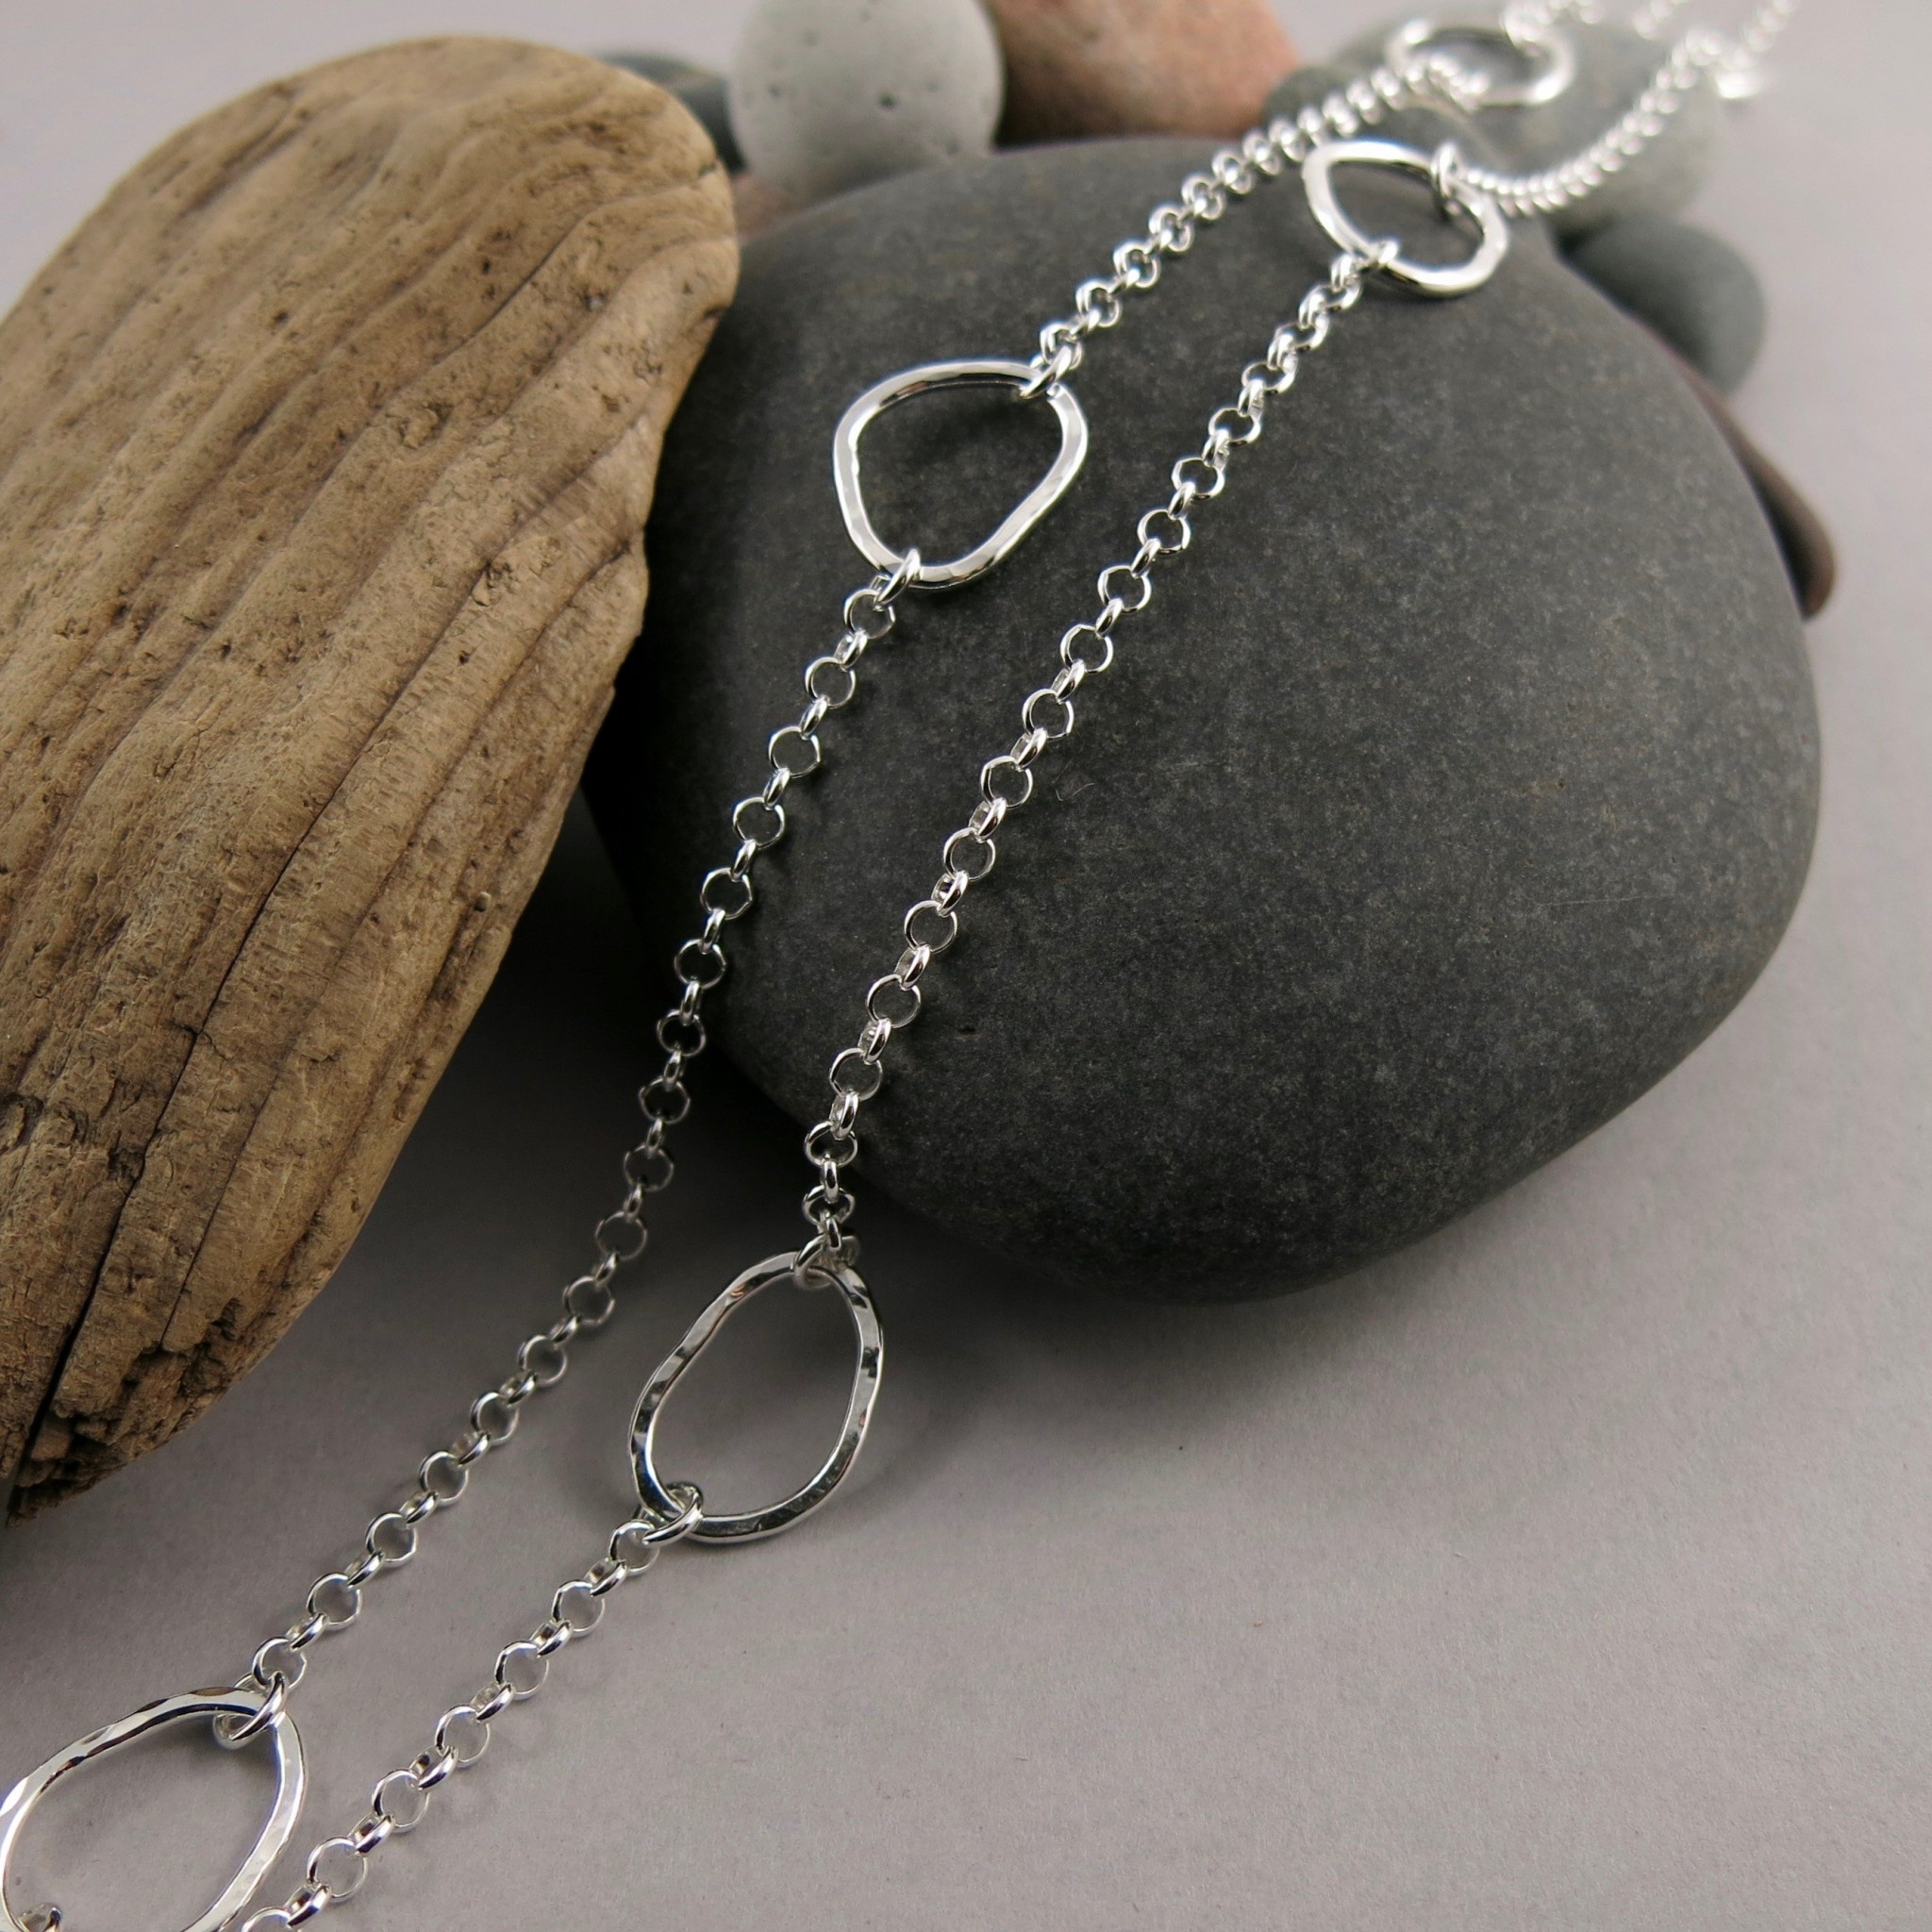 Mikel Grant Jewelry Coast Long Chain Necklace